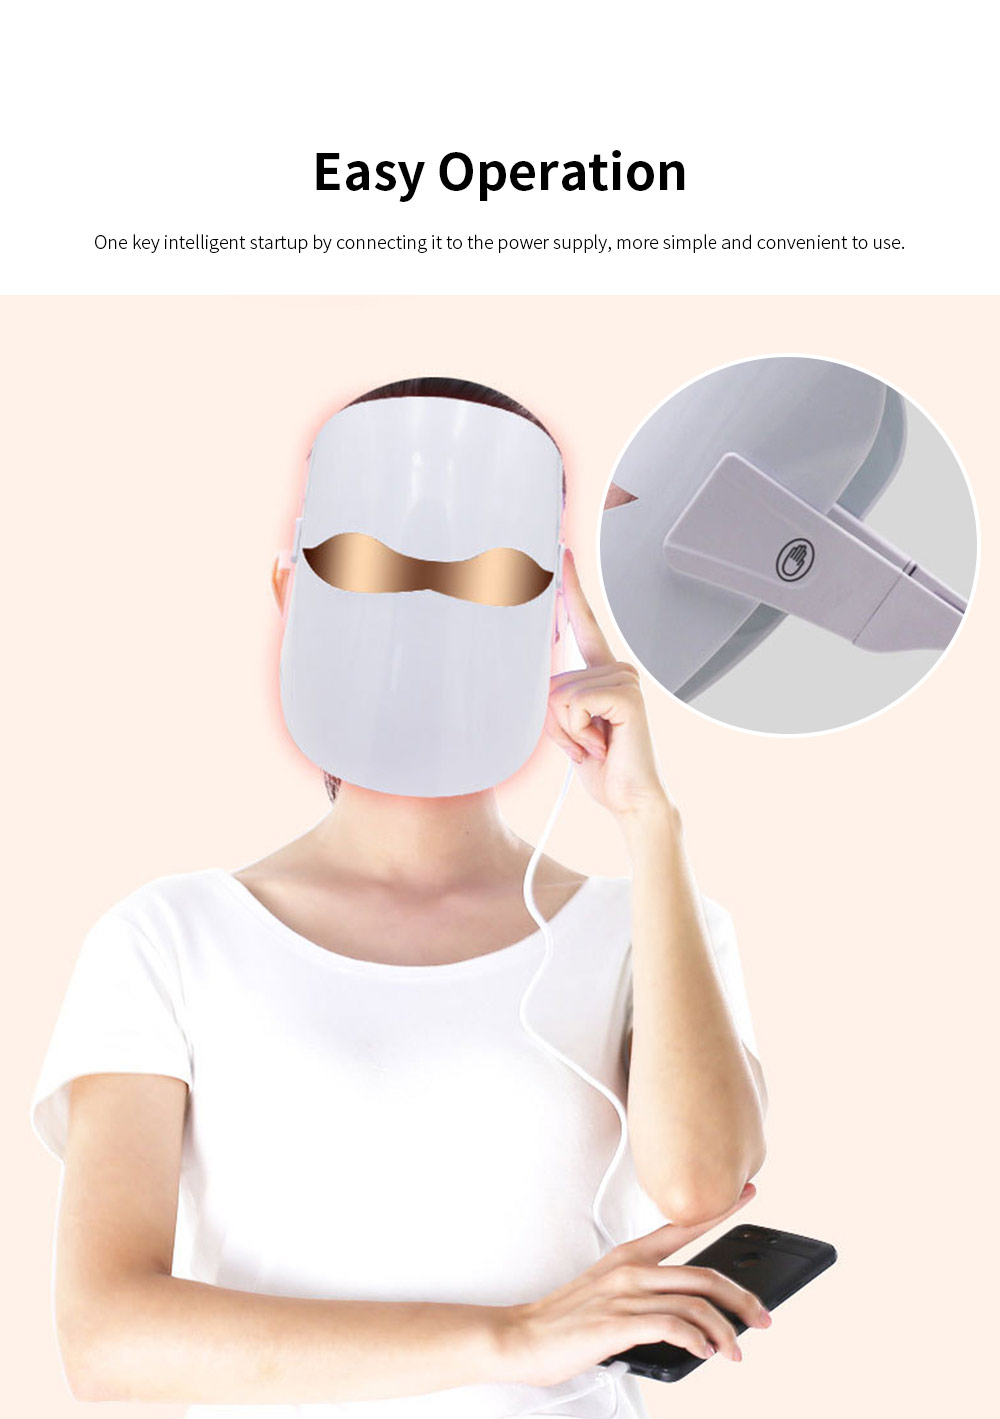 Spectrum Skin Care Mask 32 LED Face Mask with Triple Spectrum Technology for Skin Care Anti Aging Skin Tightening 6